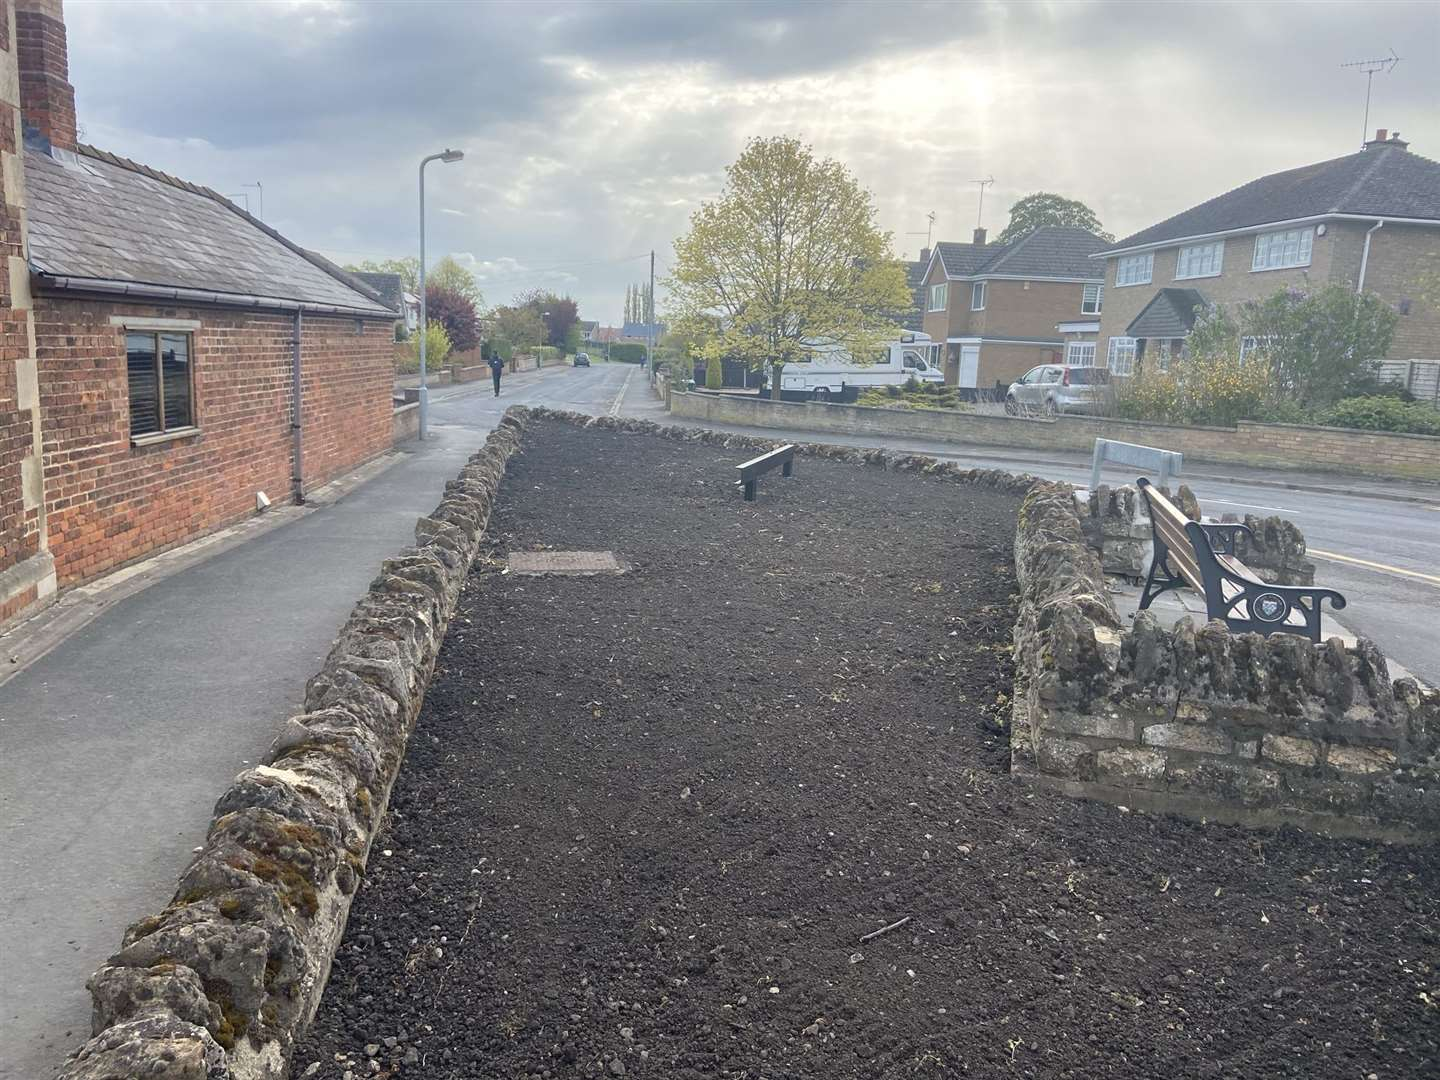 The flower bed in Coggles Causeway will hold a model of a Formula 1 race car